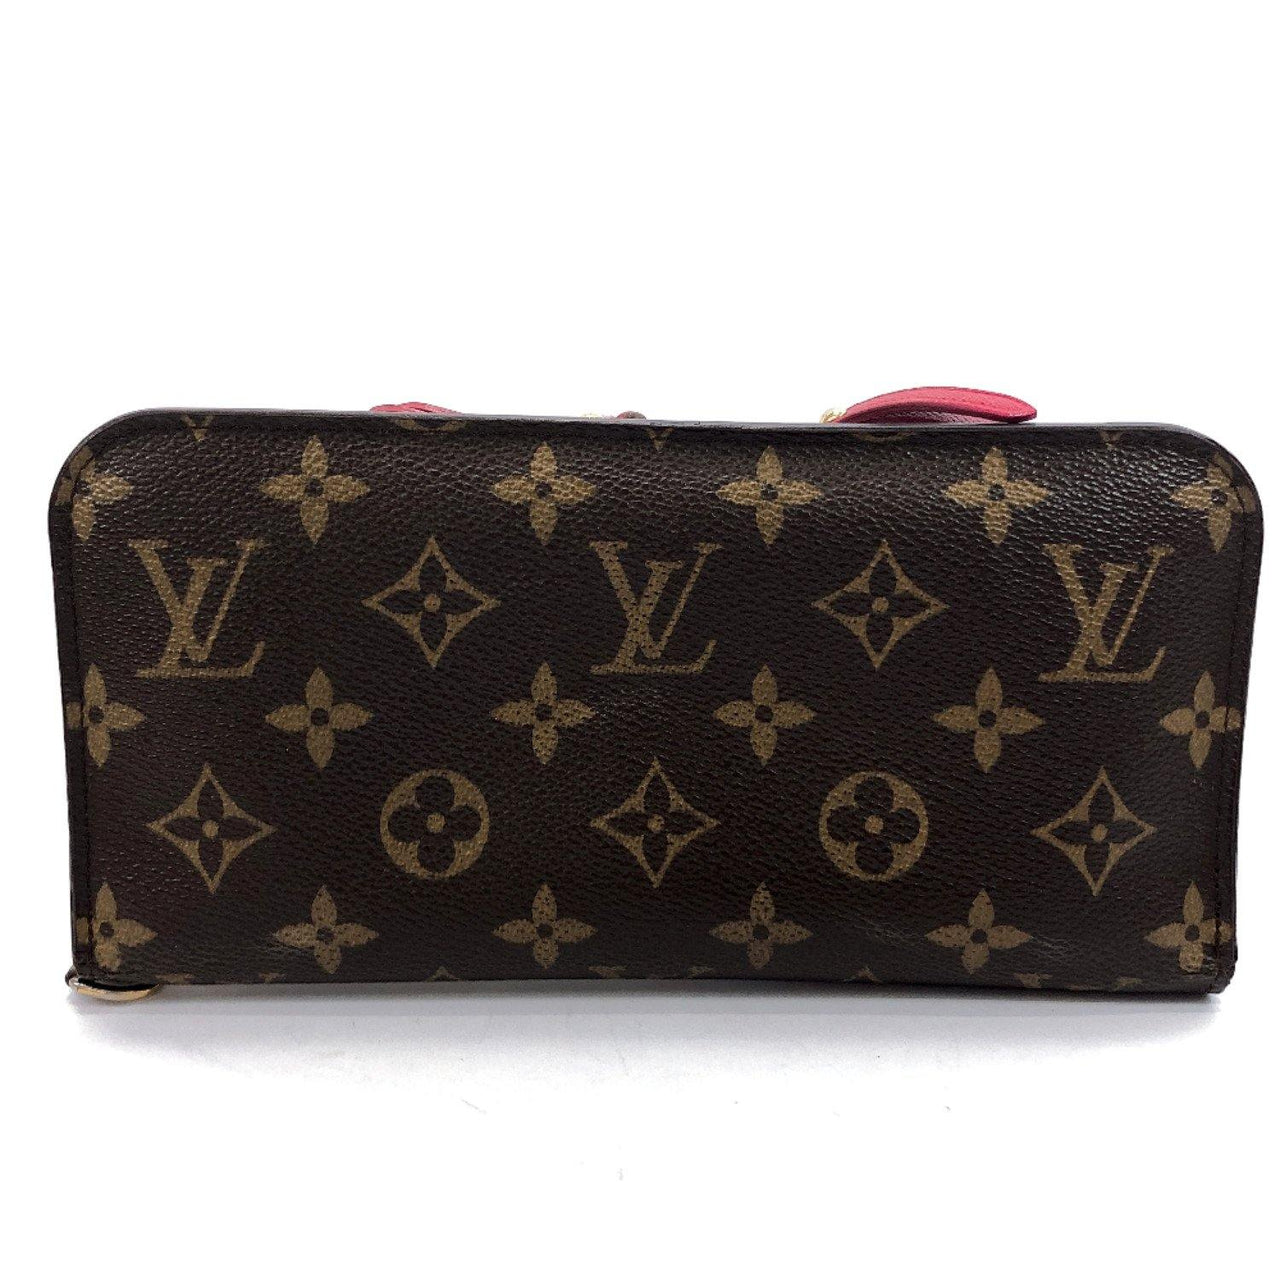 LOUIS VUITTON purse M60249 Portefeiulle unsolit Monogram canvas Brown pink Women Used